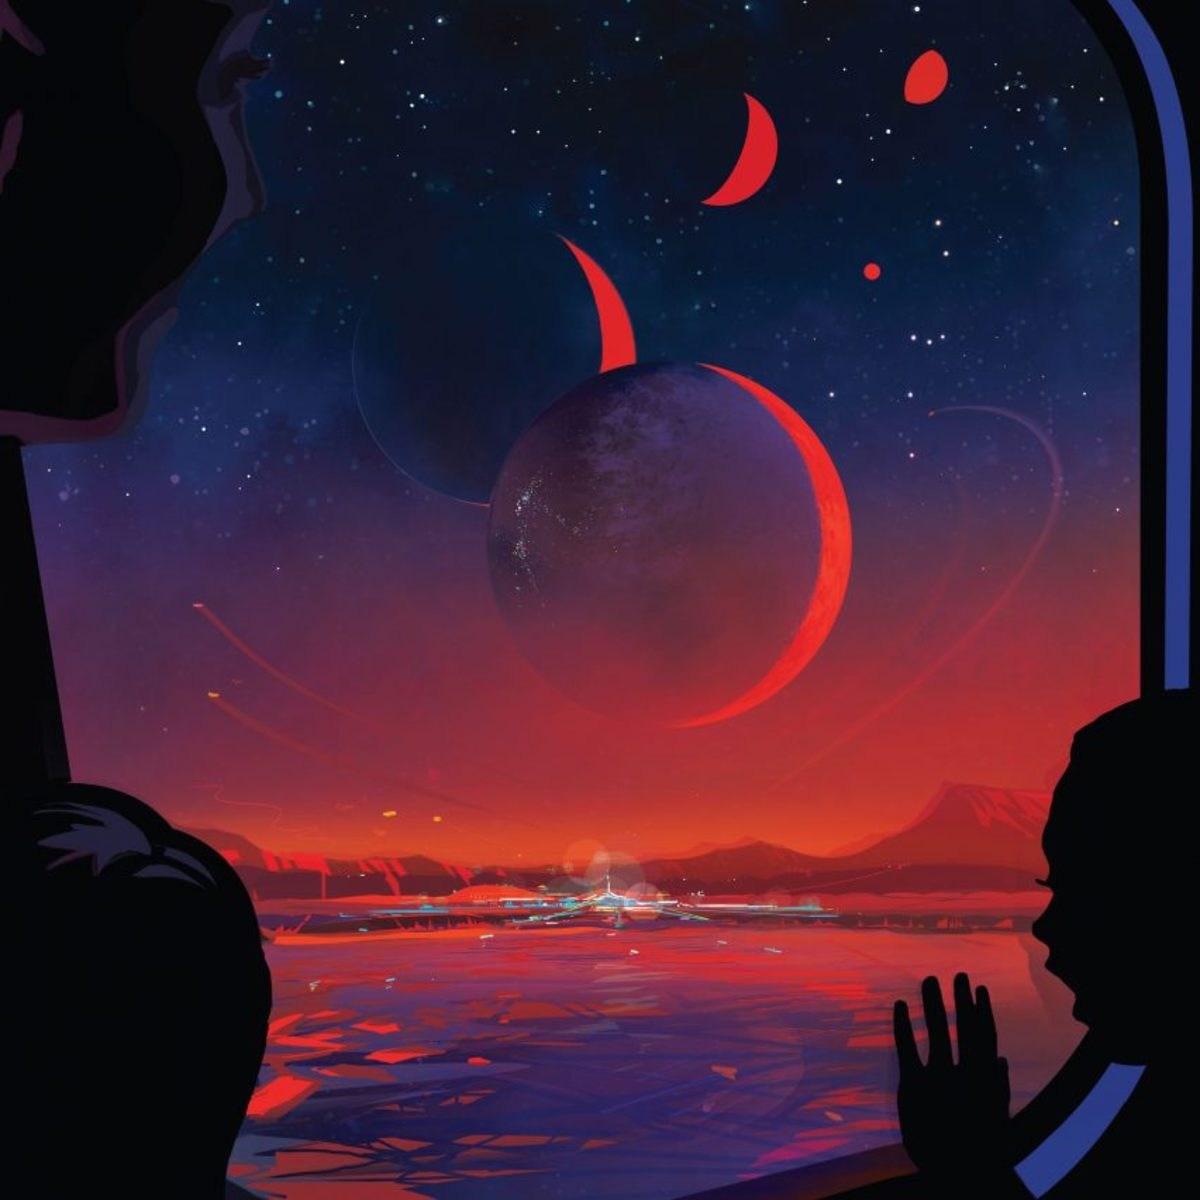 Art from NASA. Space travel to other planets could look like this